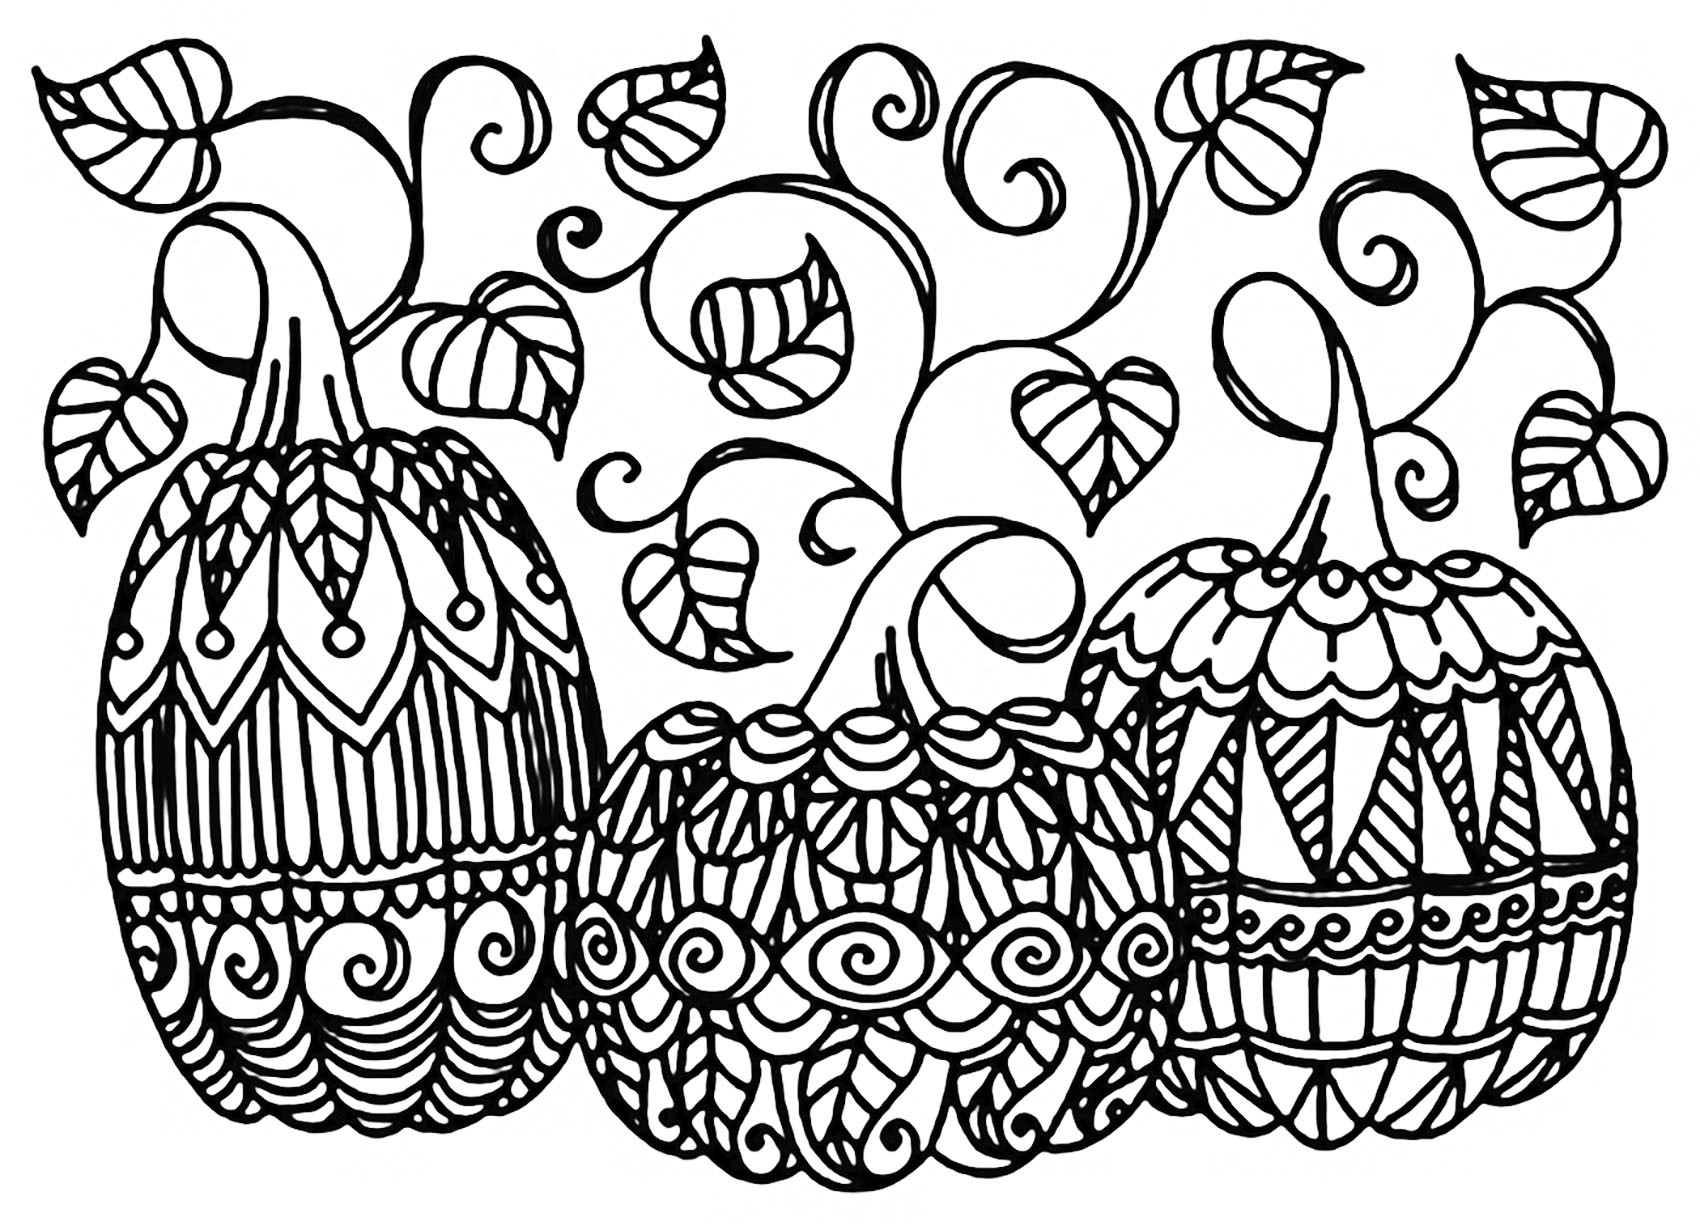 Coloring Pages For Adults Halloween  Halloween three pumpkins Halloween Adult Coloring Pages